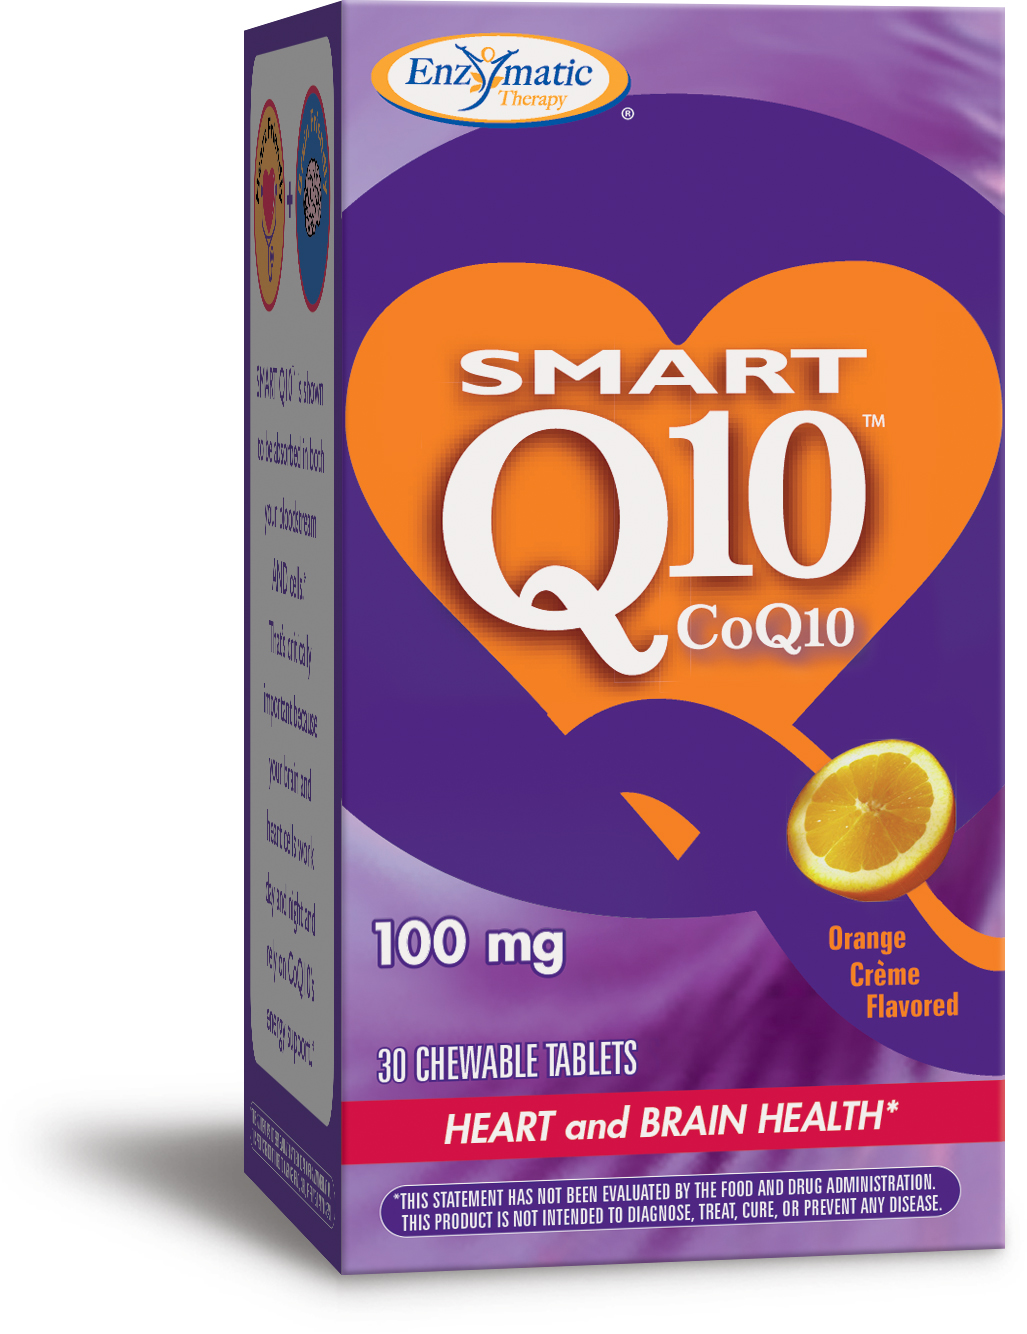 Smart Q10 Orange Creme Flavor 100 mg 30 Chewable tabs by Enzymatic Therapy